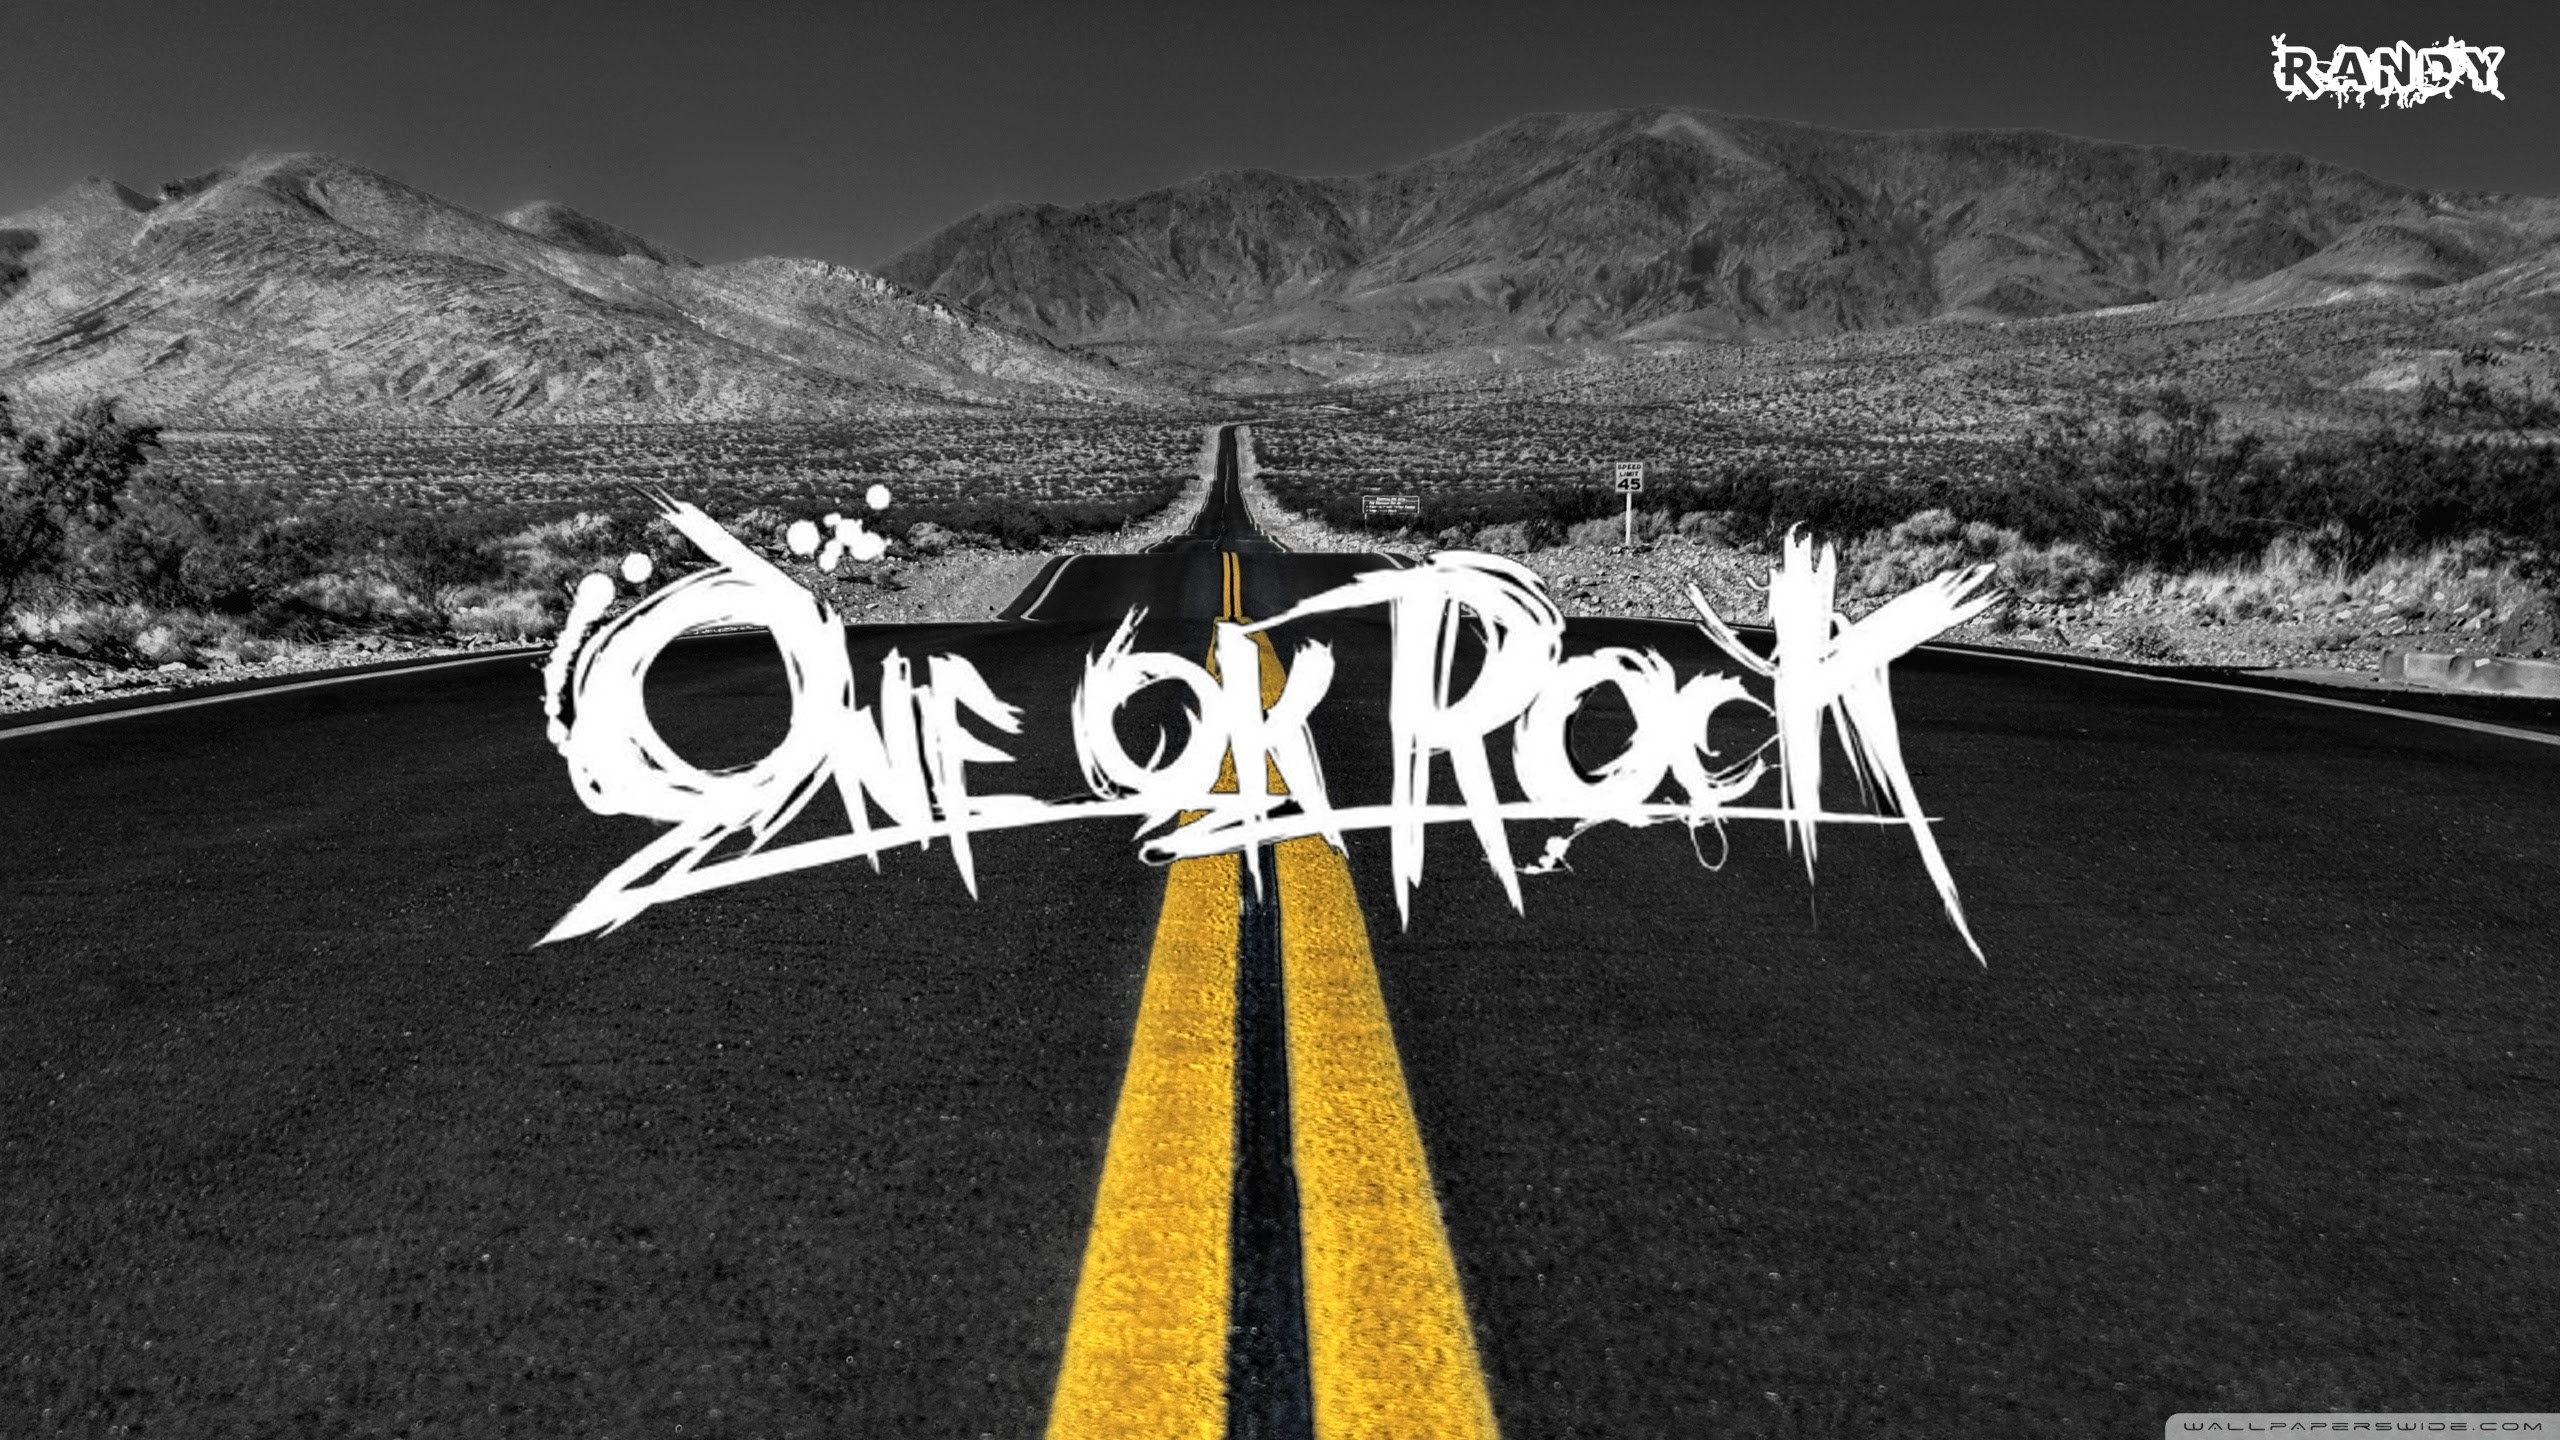 How To Make Live Wallpaper Work Iphone X One Ok Rock Wallpapers 183 ①